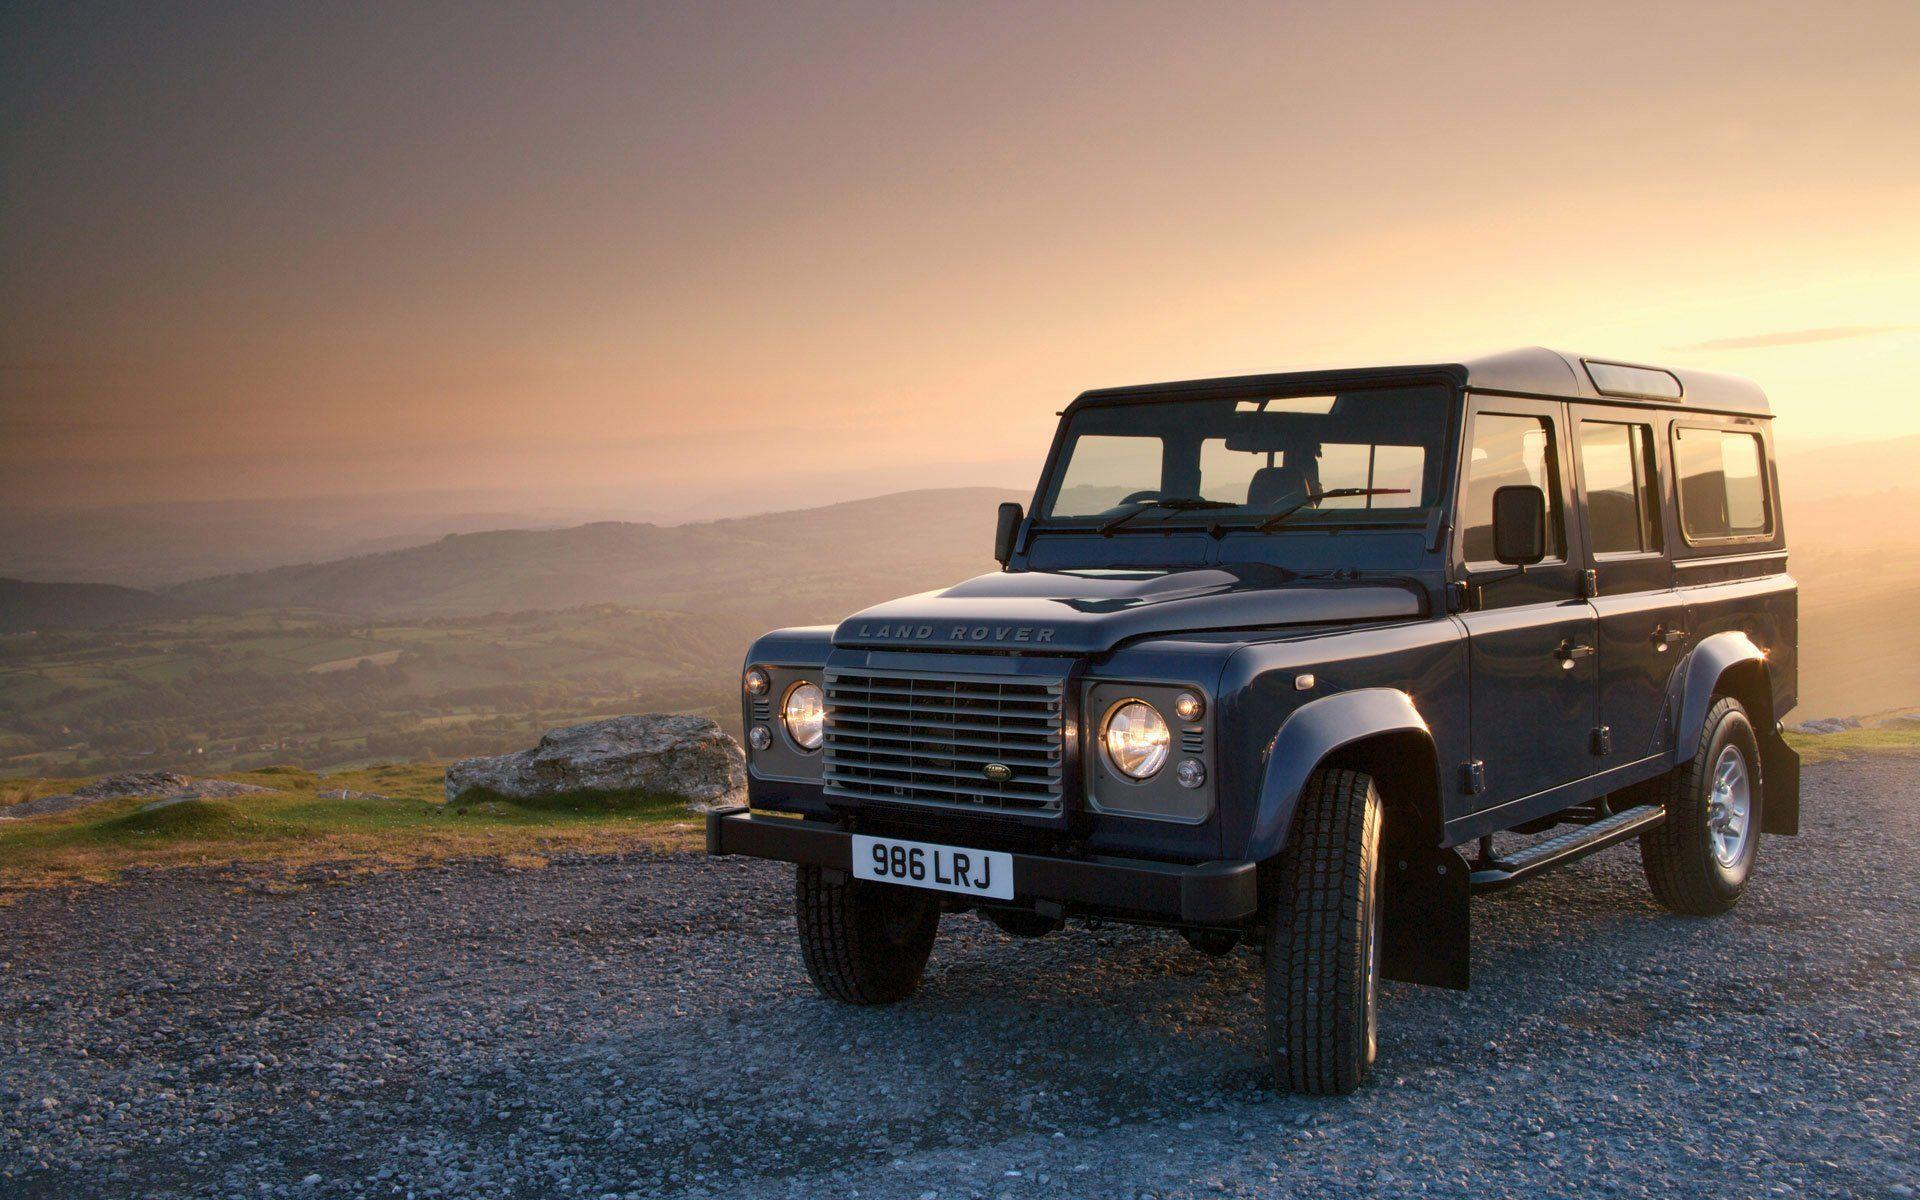 Land Rover Defender Wallpapers Top Free Land Rover Defender Backgrounds Wallpaperaccess